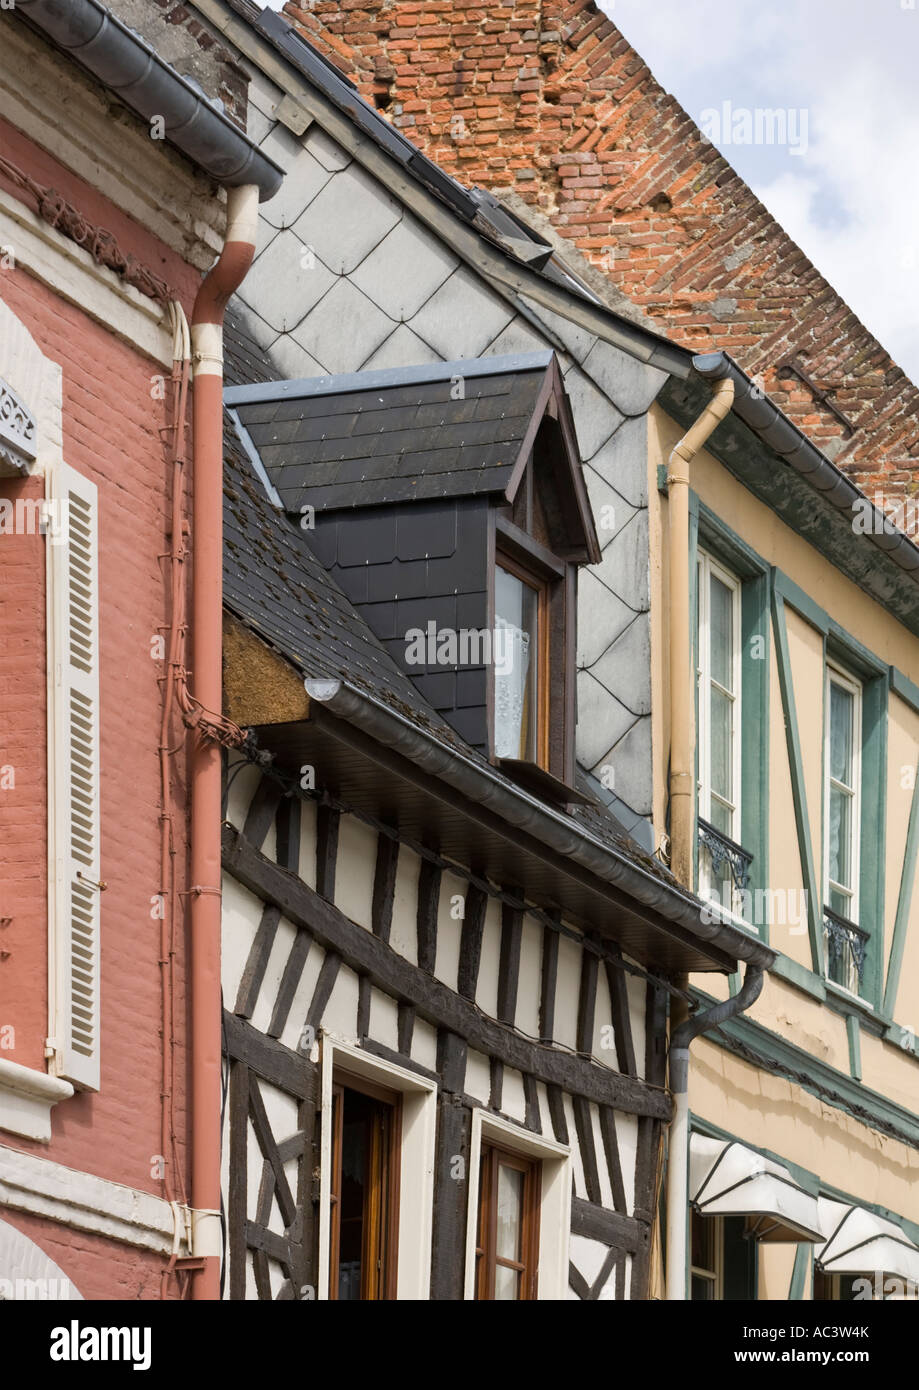 16th Century French Home - dormer-window-on-16th-century-half-timbered-french-town-house-AC3W4K_Best 16th Century French Home - dormer-window-on-16th-century-half-timbered-french-town-house-AC3W4K  Image_957970.jpg